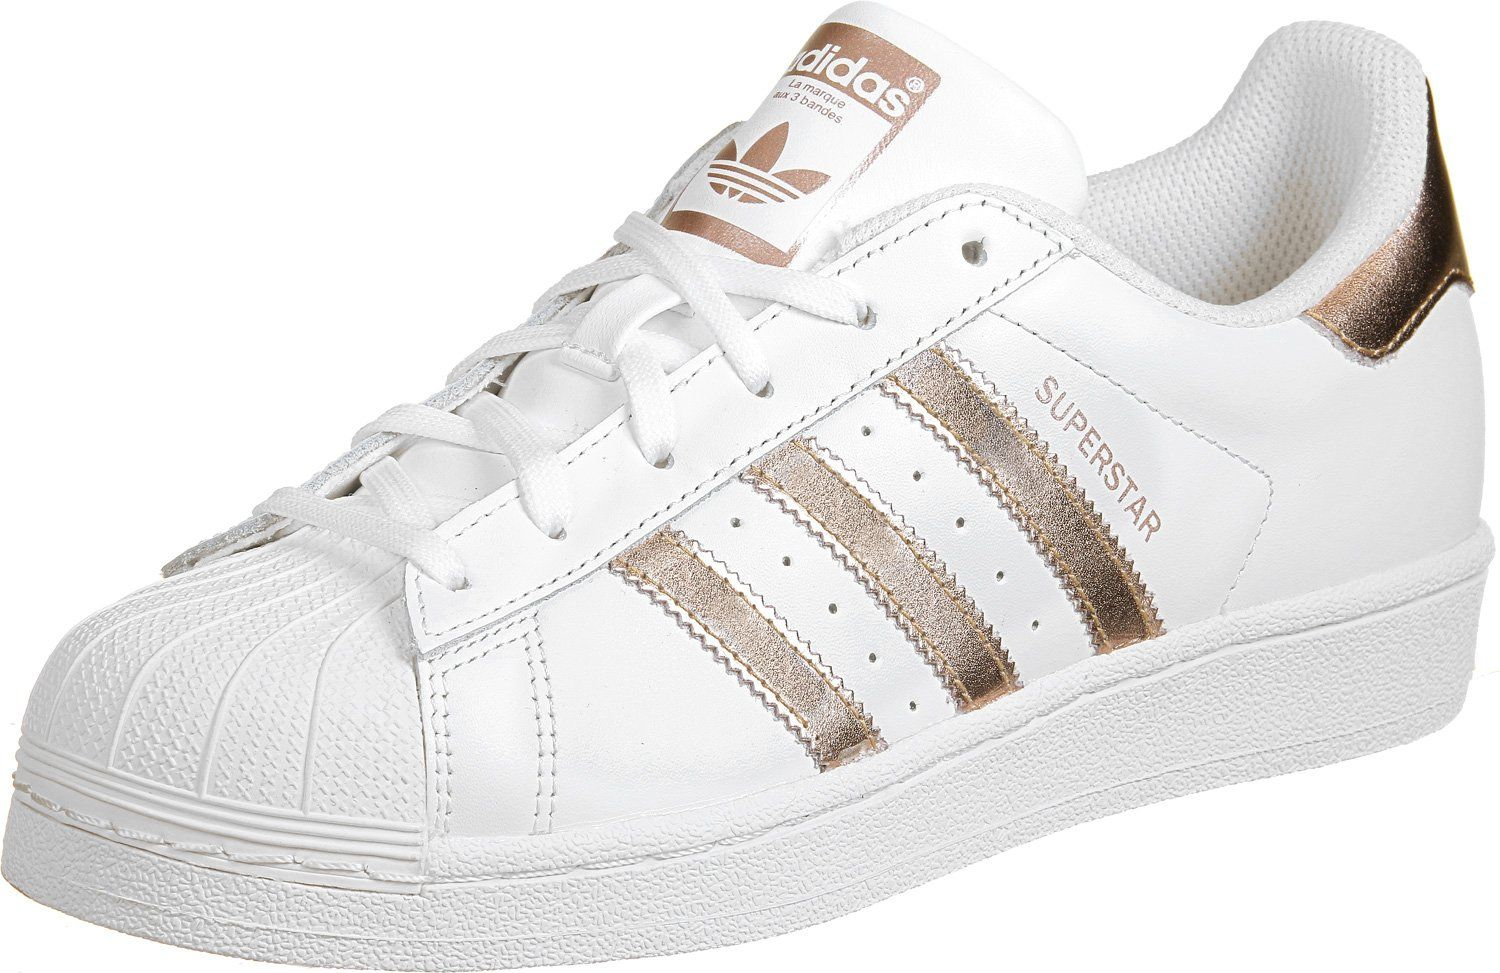 adidas Women's Superstar W, FOOTWEAR WHITE/GOLD, 7 US. Model Number: